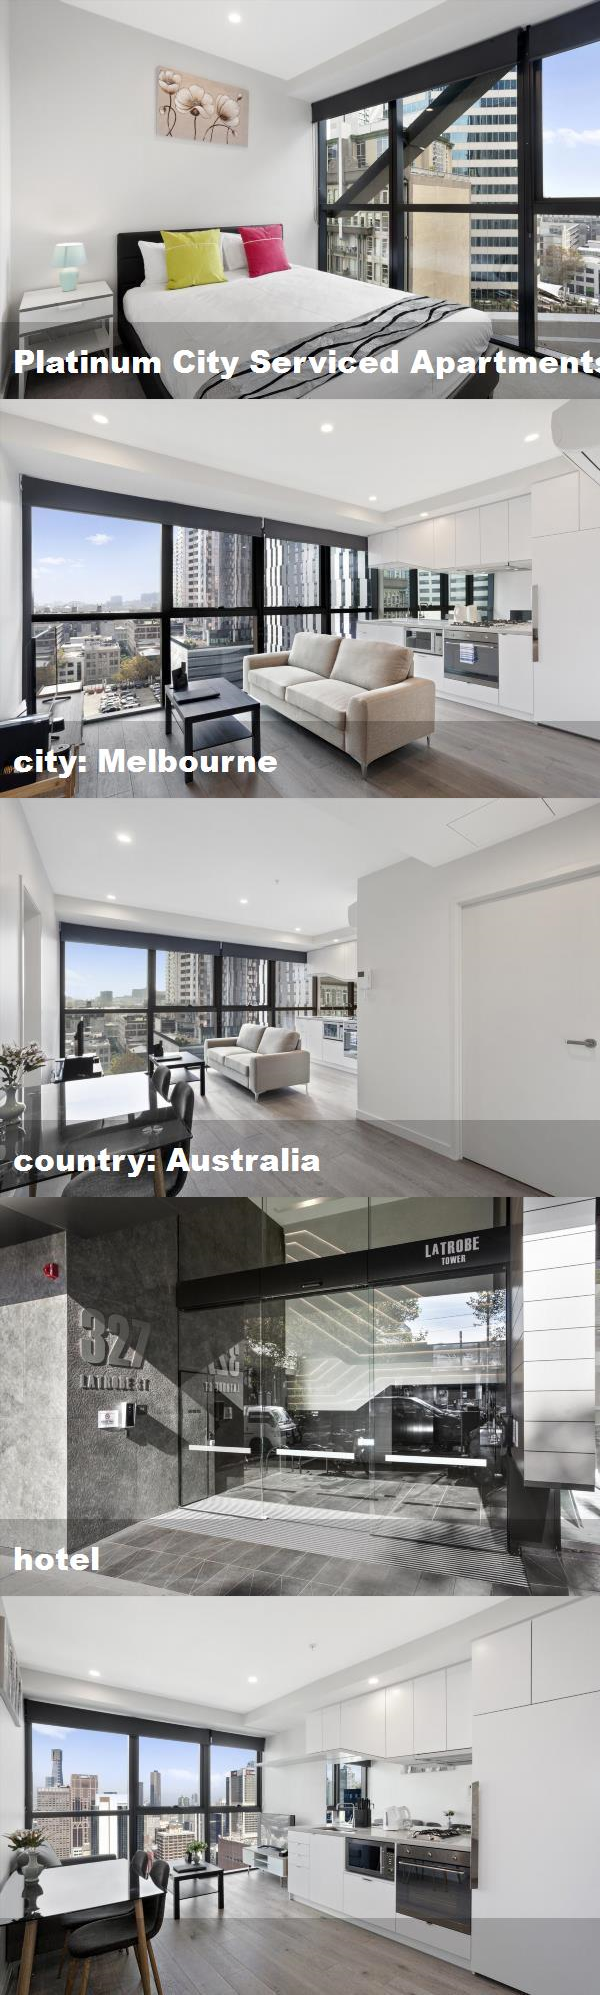 Platinum City Serviced Apartments, city: Melbourne ...